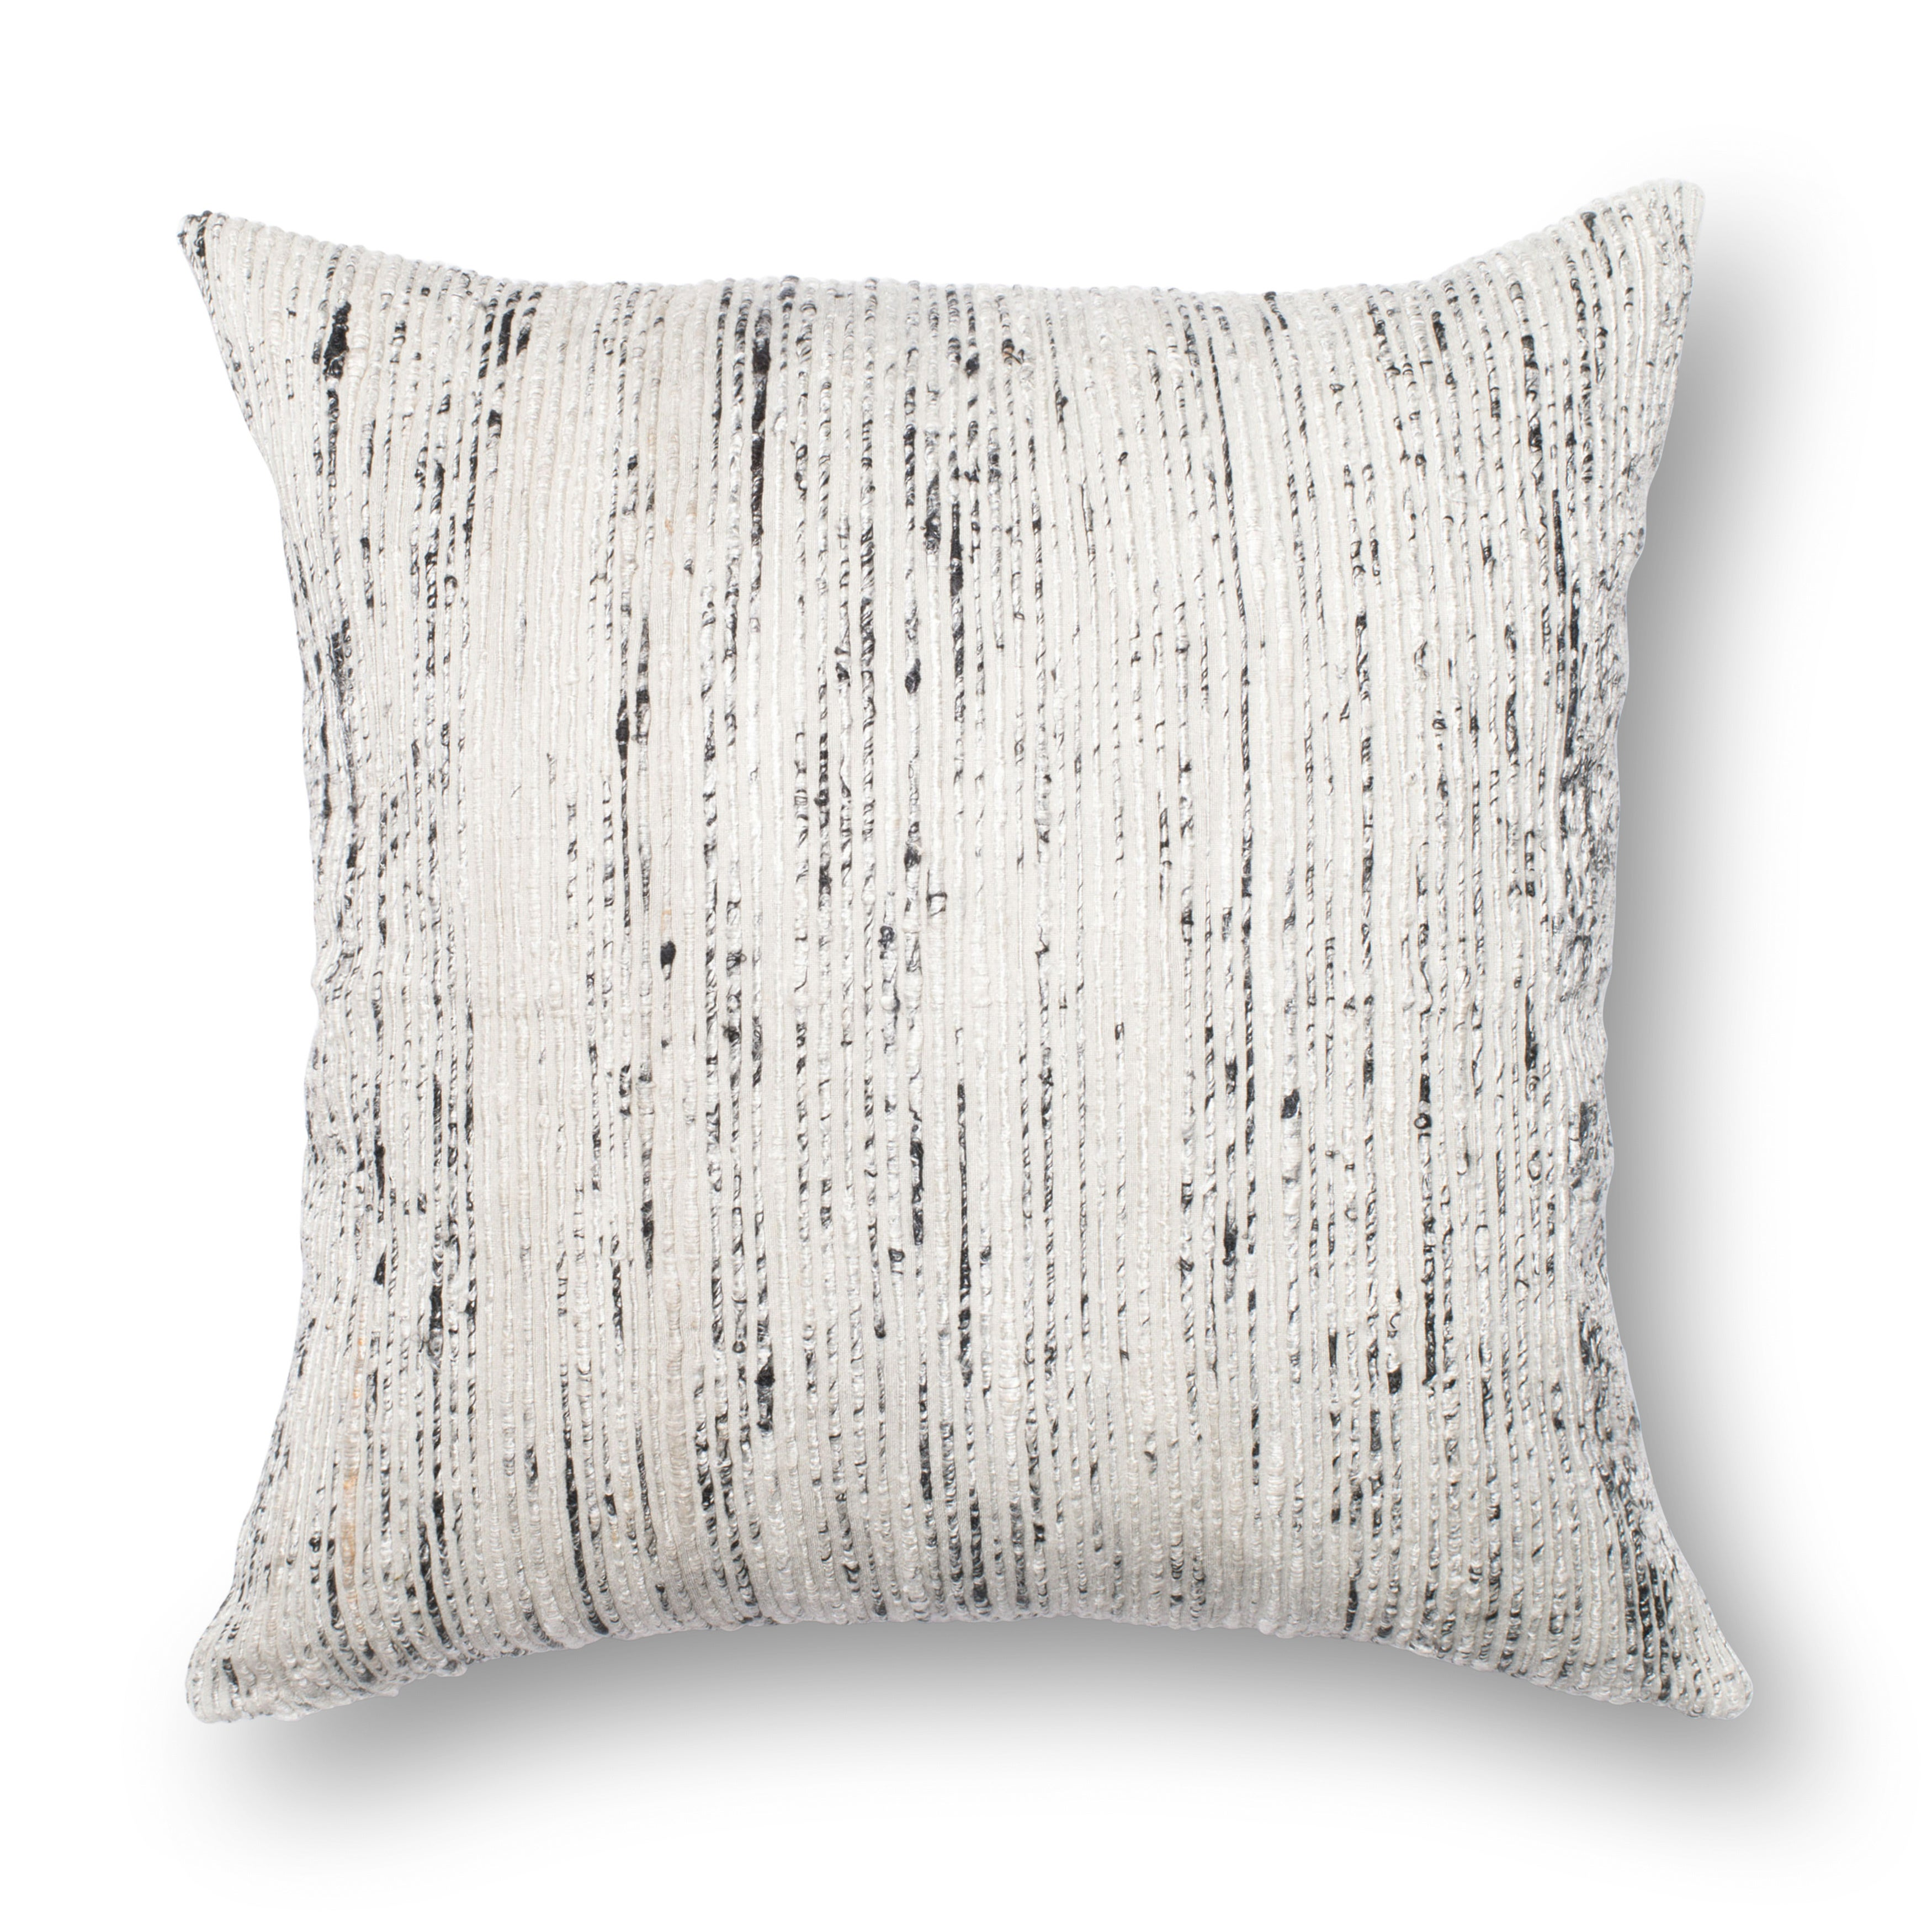 Peachy Buy Grey Pillow Covers Throw Pillows Online At Overstock Andrewgaddart Wooden Chair Designs For Living Room Andrewgaddartcom